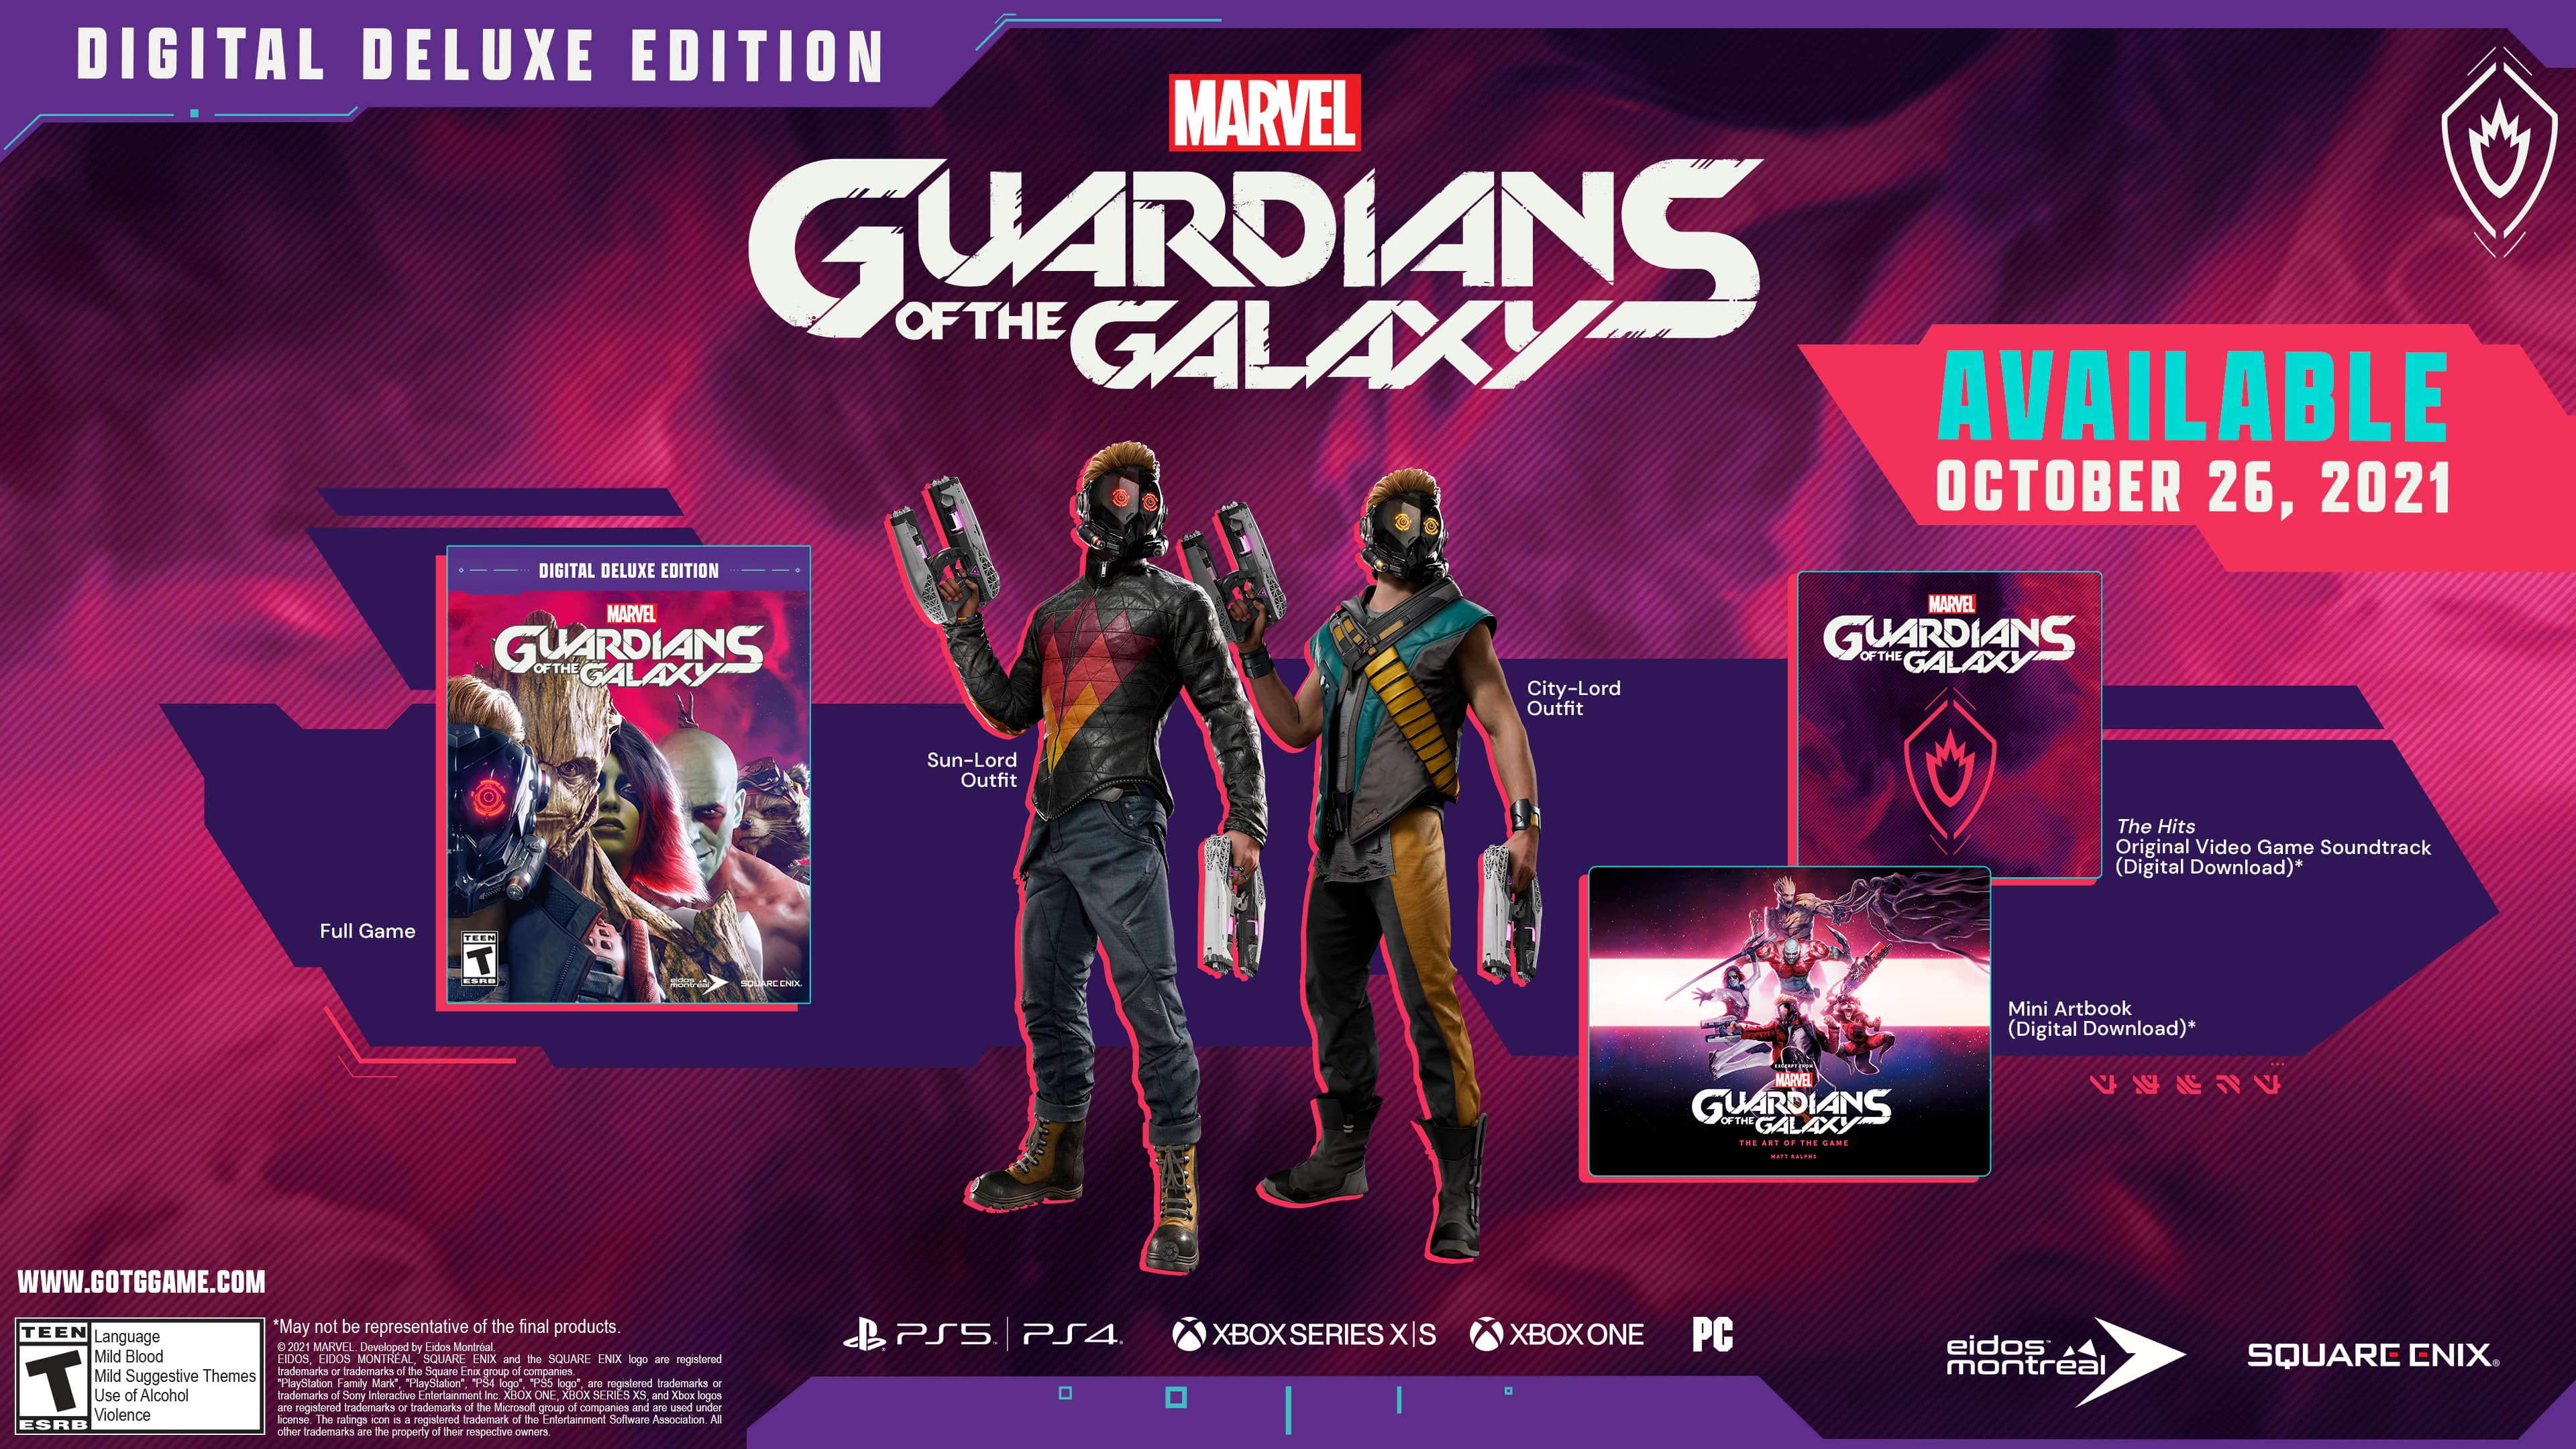 Contents of the Digital Deluxe edition of Marvel's Guardians of the Galaxy